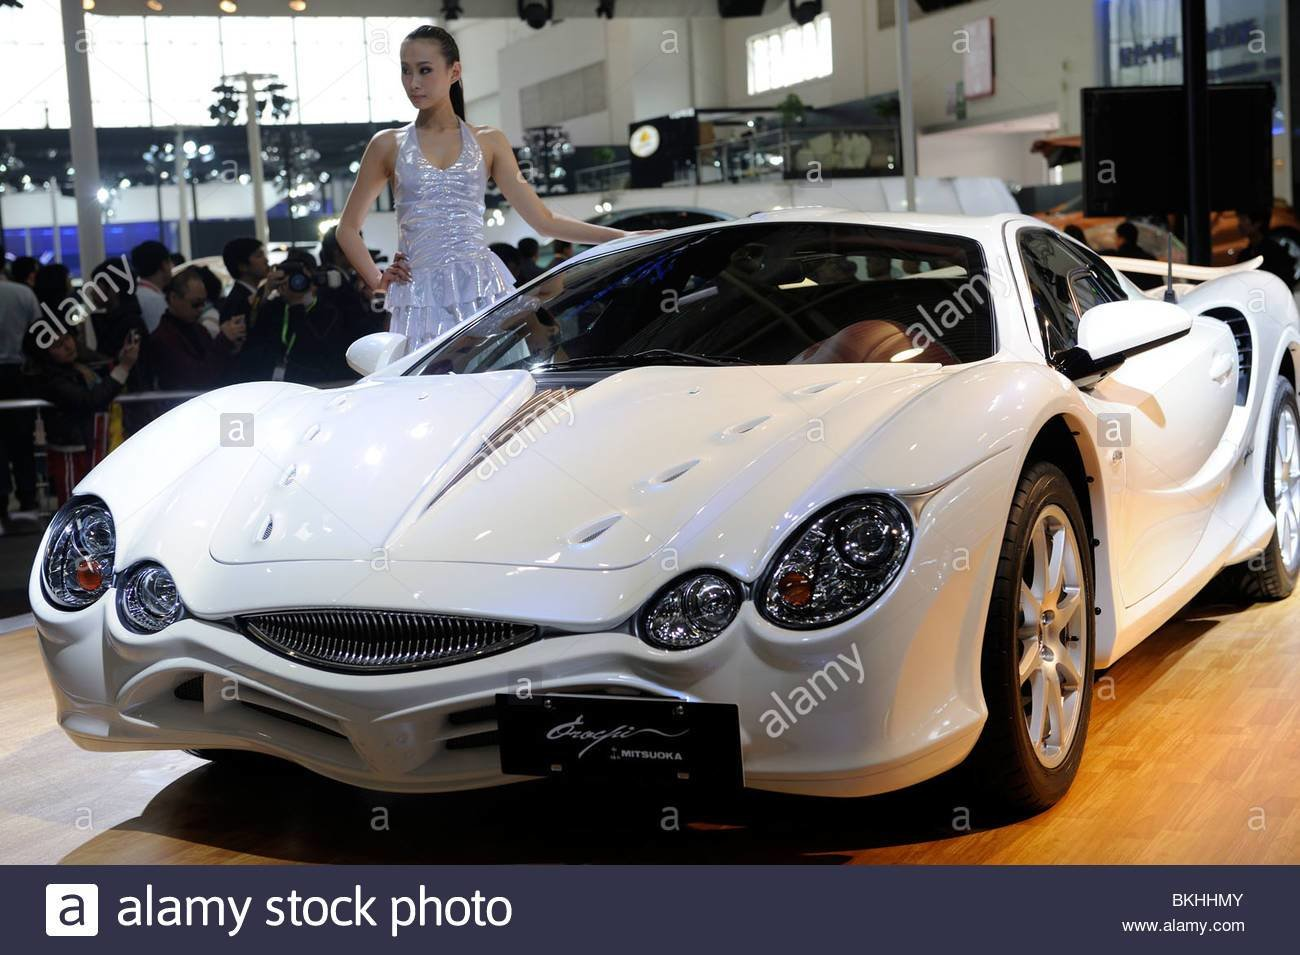 New Mitsuoka Stock Photos Mitsuoka Stock Images Alamy On This Month